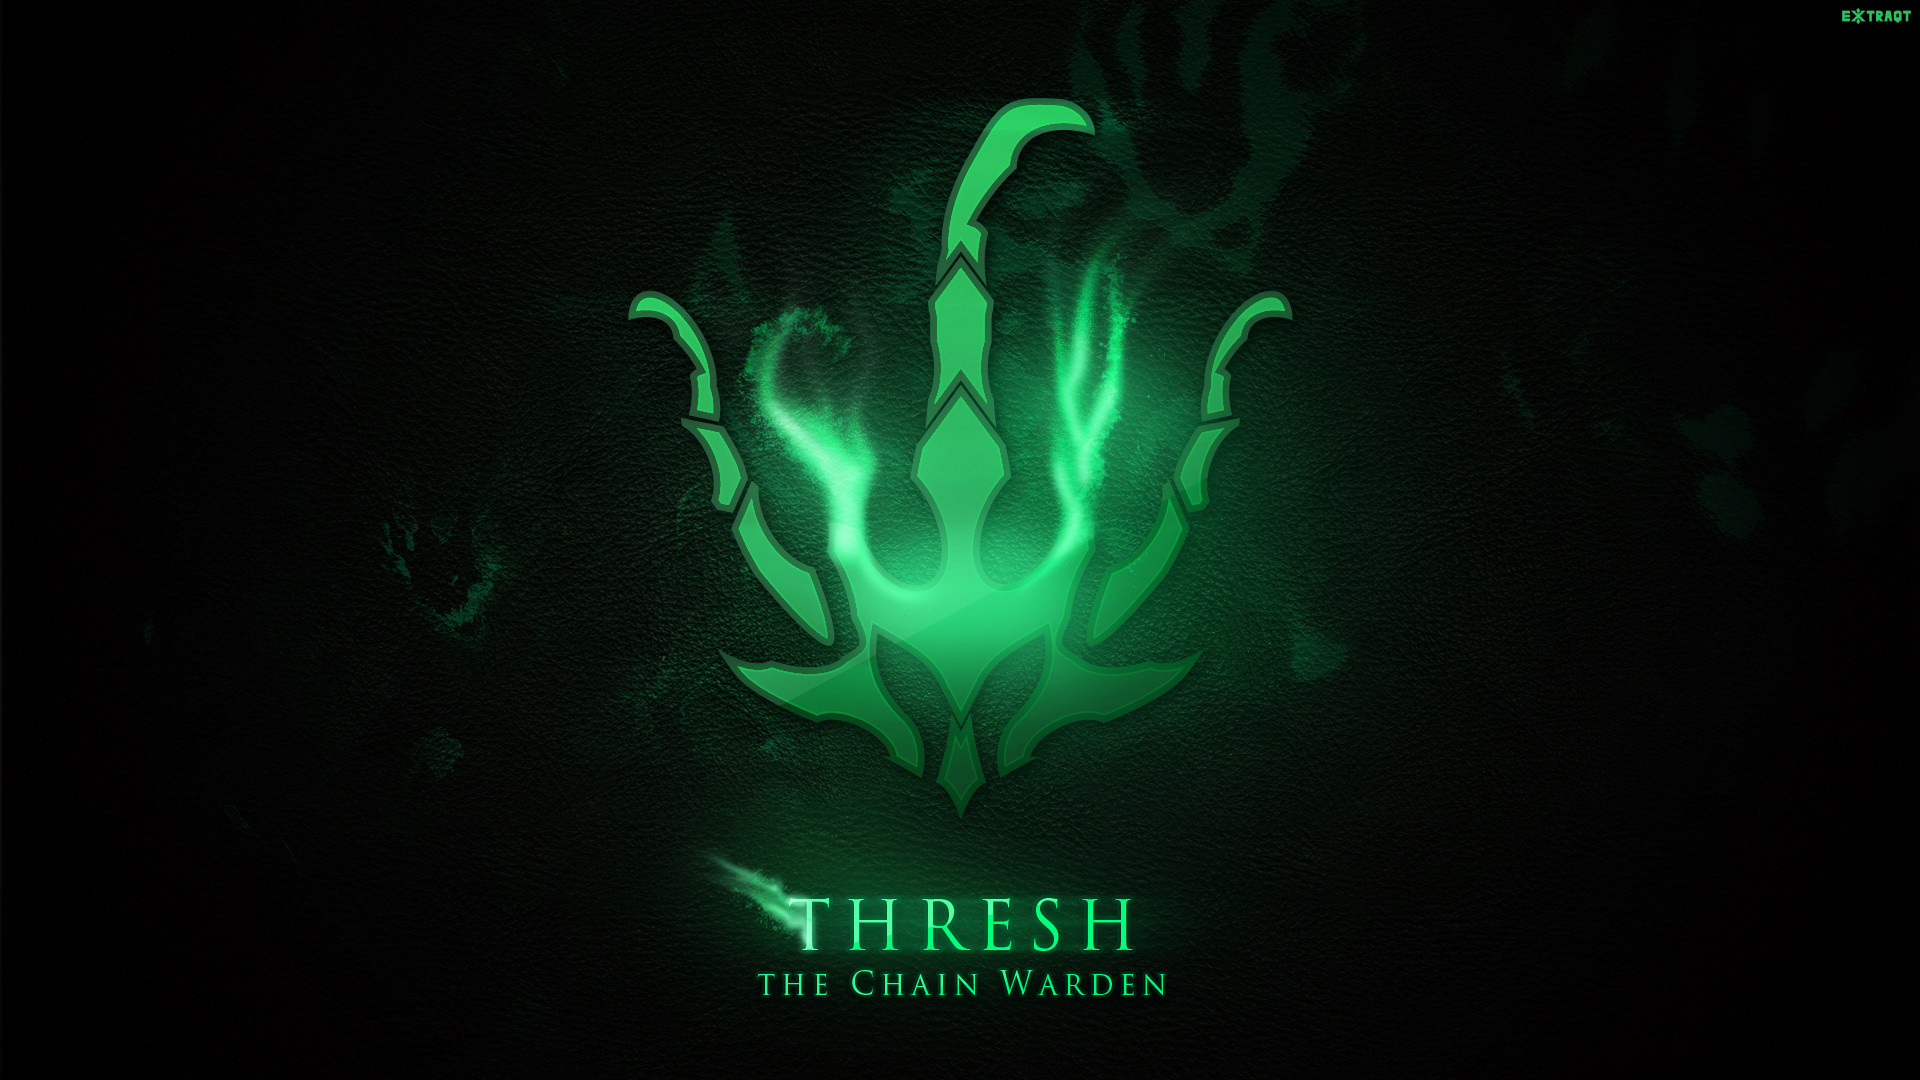 Thresh League Of Legends Wallpapers HD 1920x1080